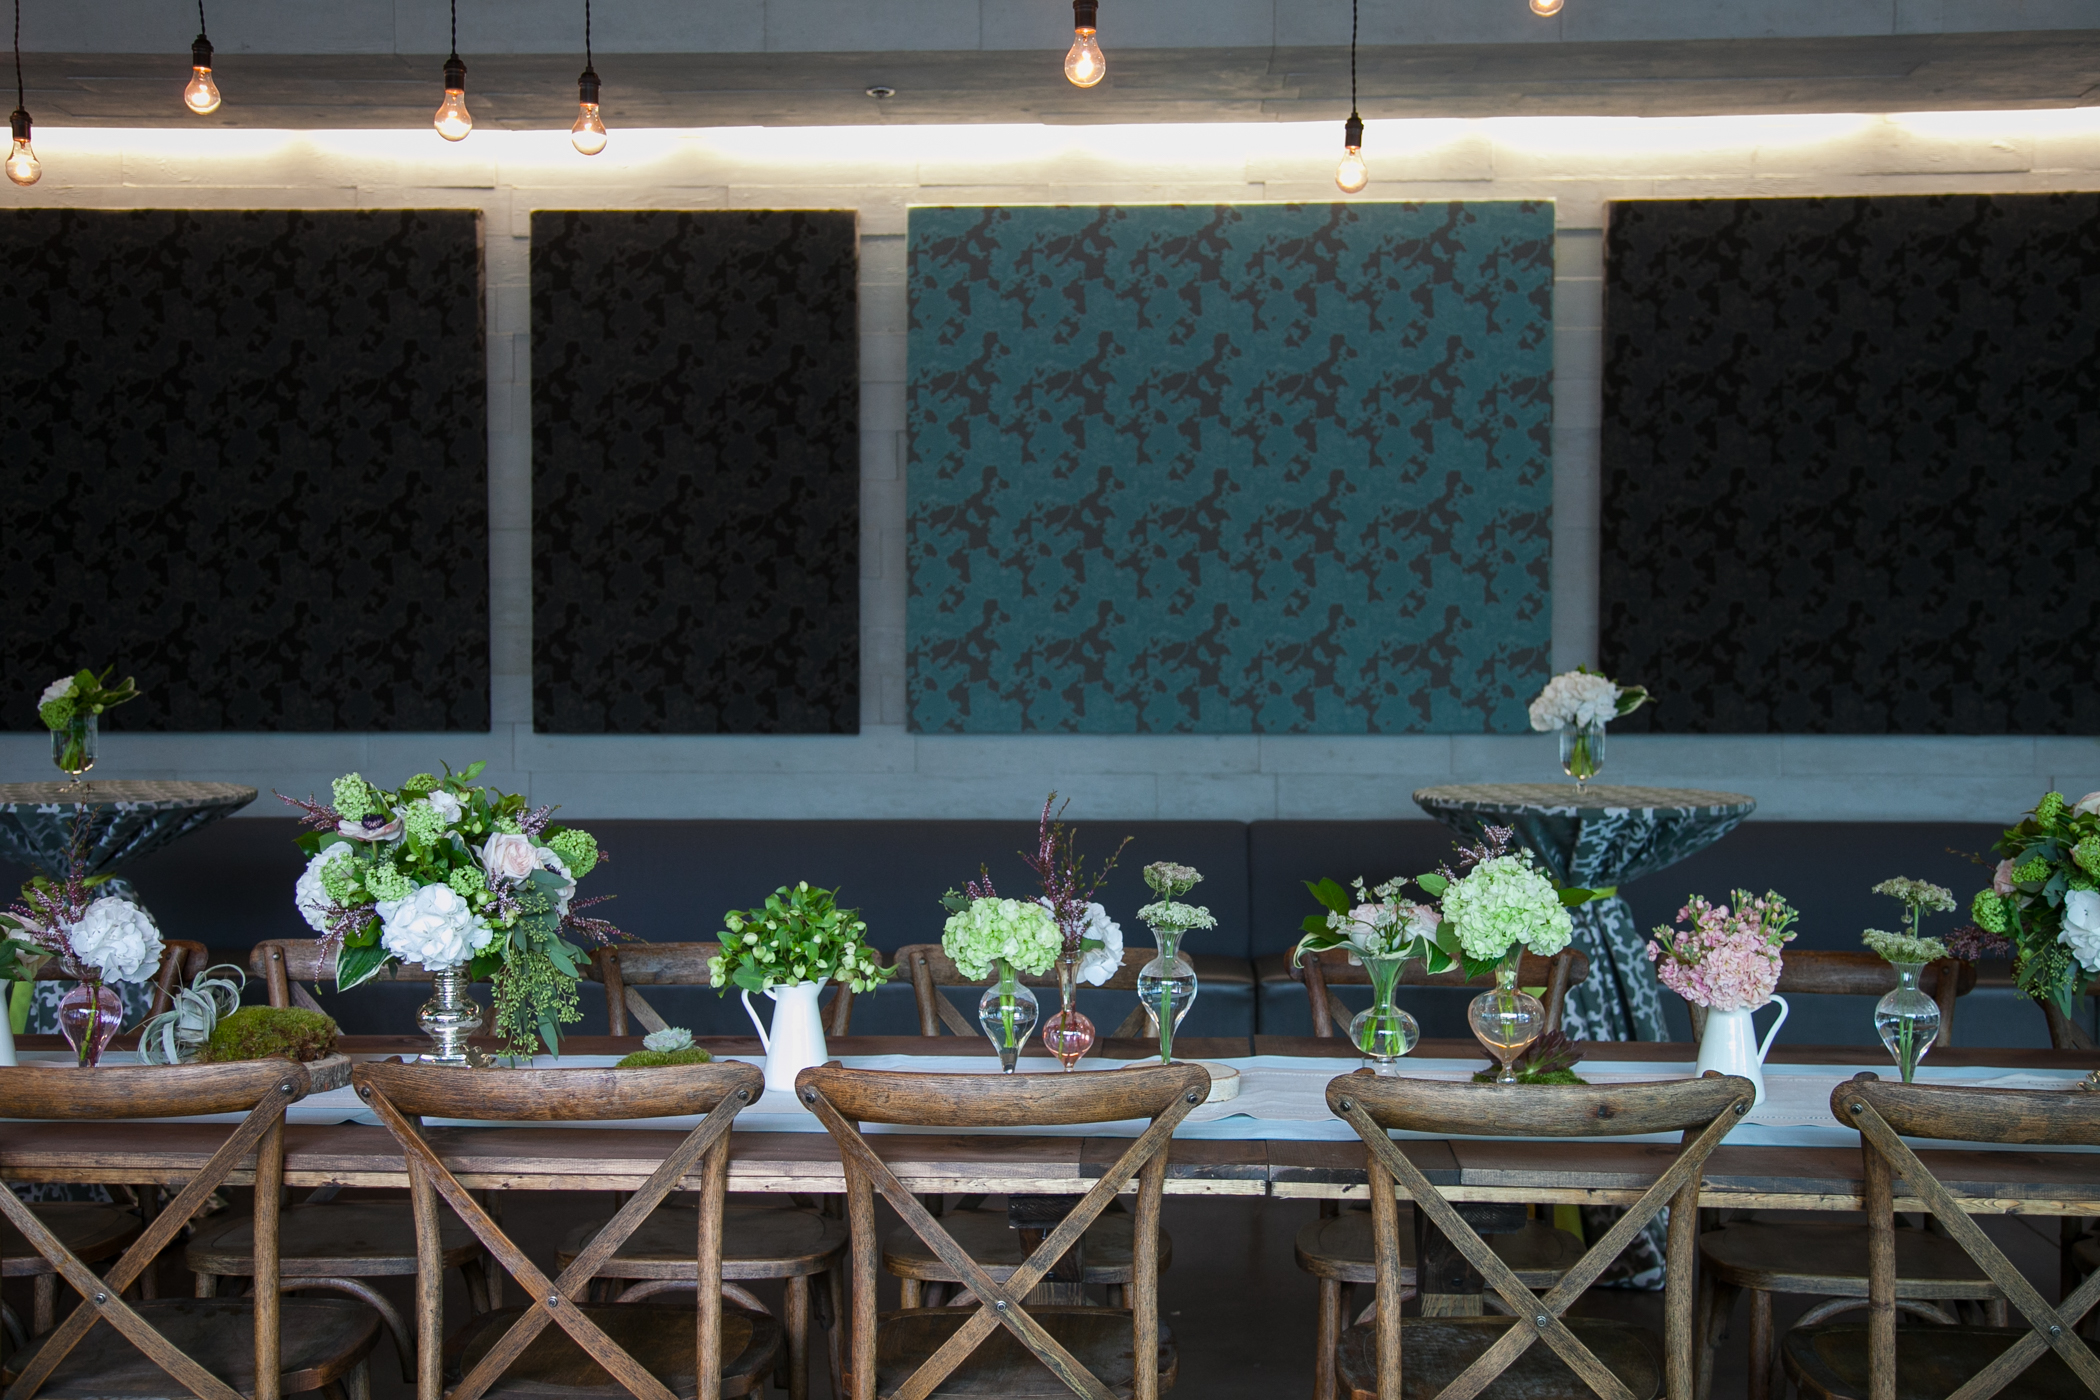 Luxury Events - Gillian Marto Creating Events of a Lifetime